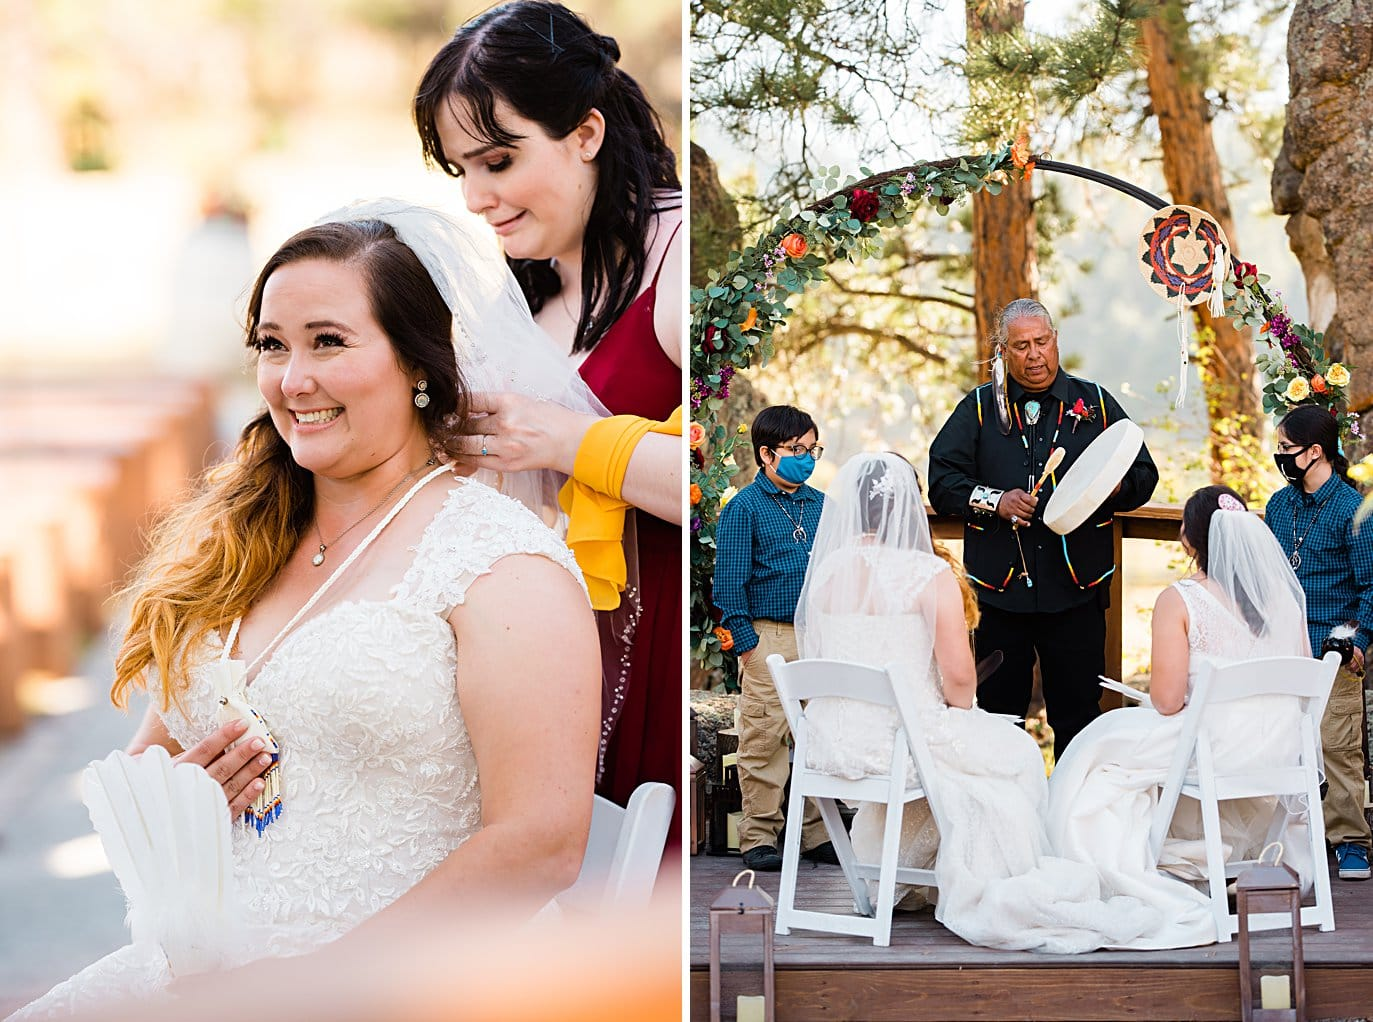 traditional native american wedding ceremony at fall Deer Creek Valley Ranch wedding by Denver wedding photographer Jennie Crate